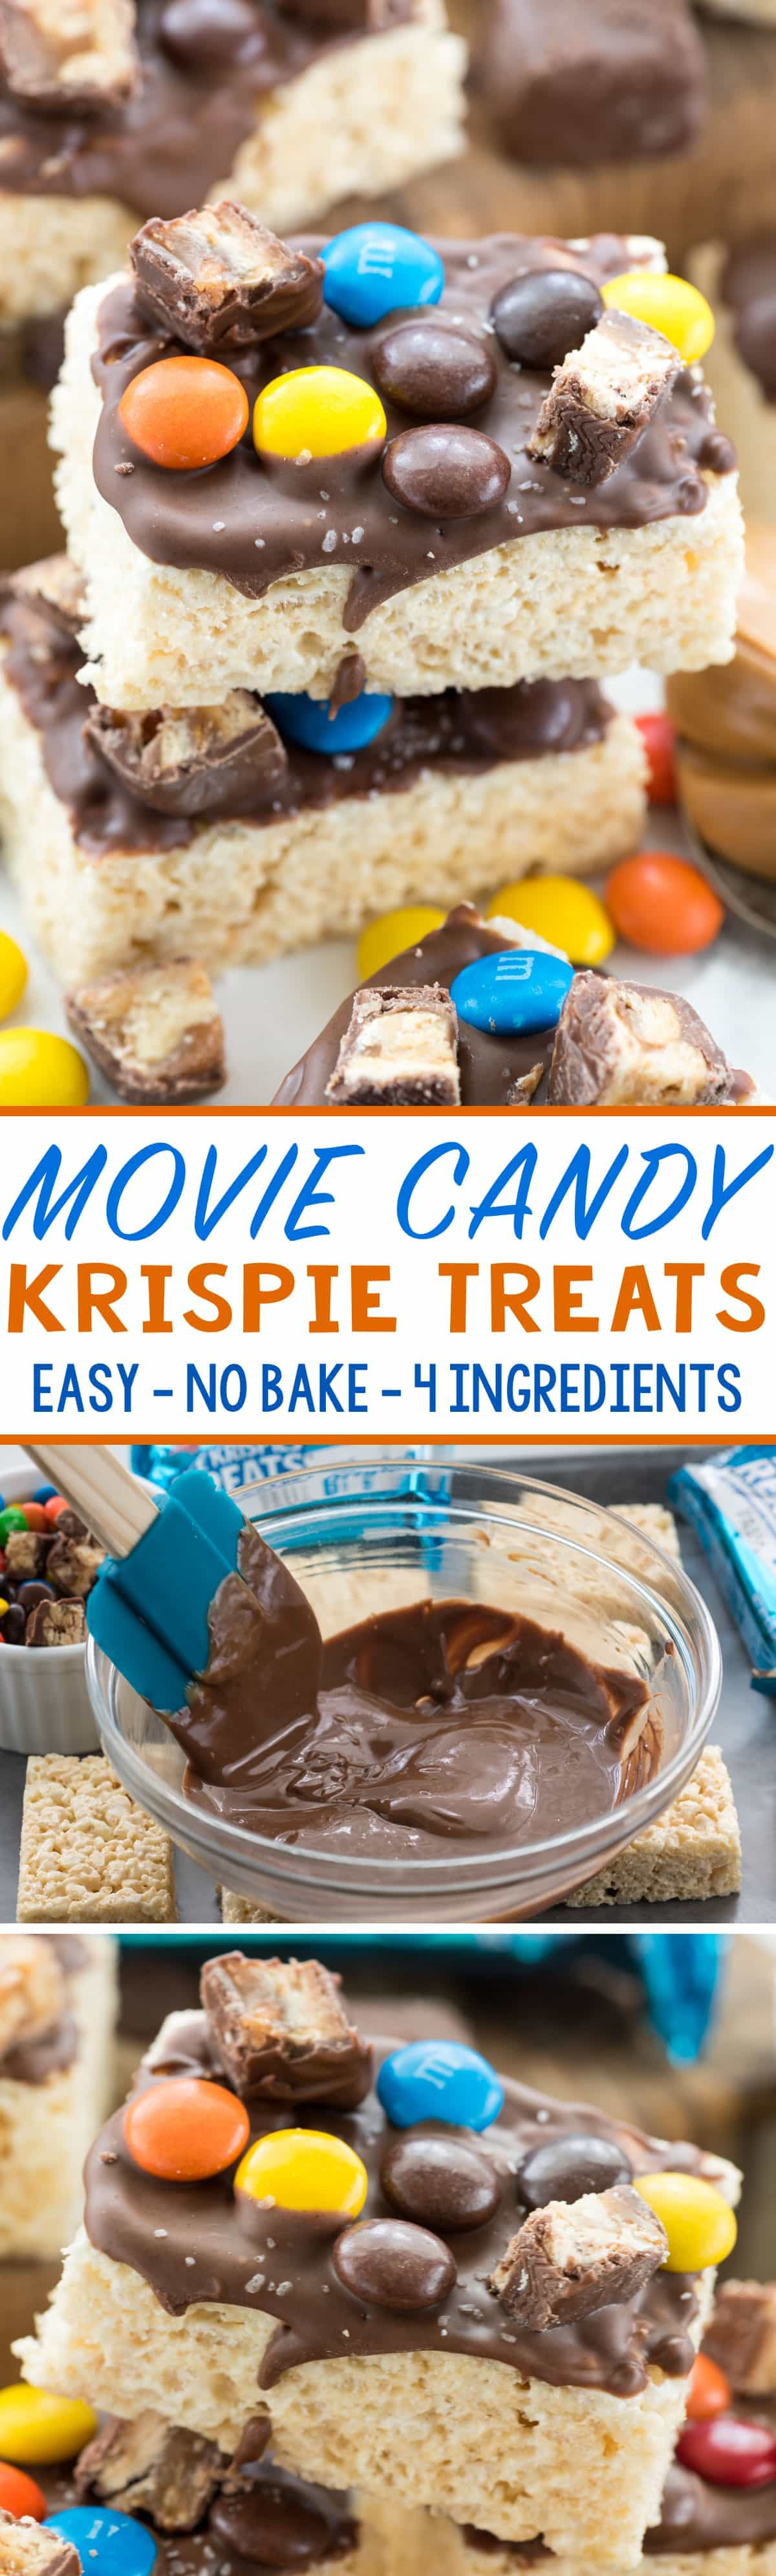 Movie Candy Krispies Treats - this easy no bake rice krispies treats recipes takes only minutes to make. It's the perfect recipe for movie night!